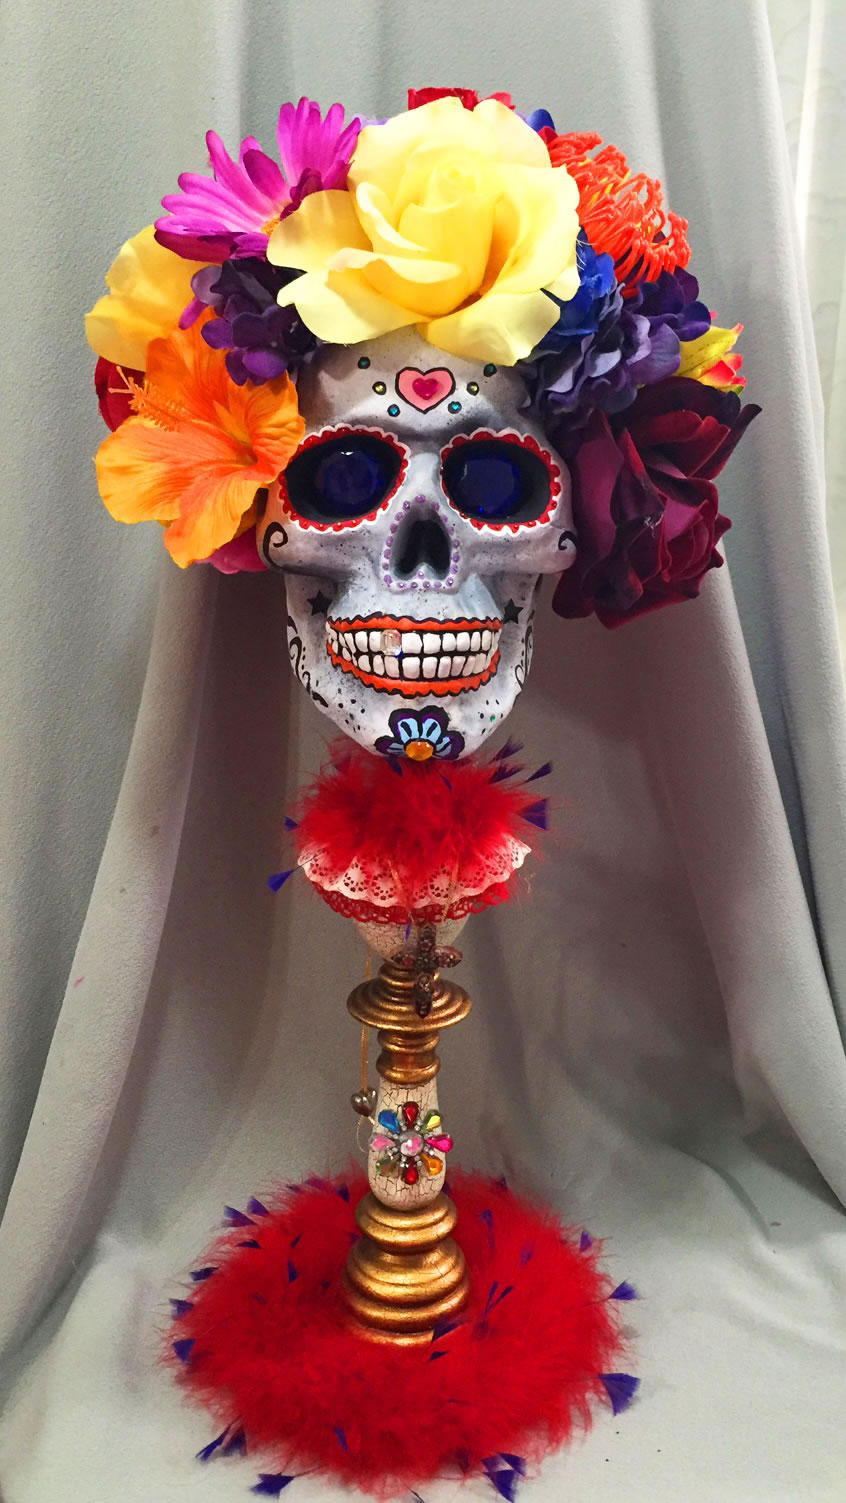 perfectly dreadful halloween shabby Chic vintage day of the dead skul